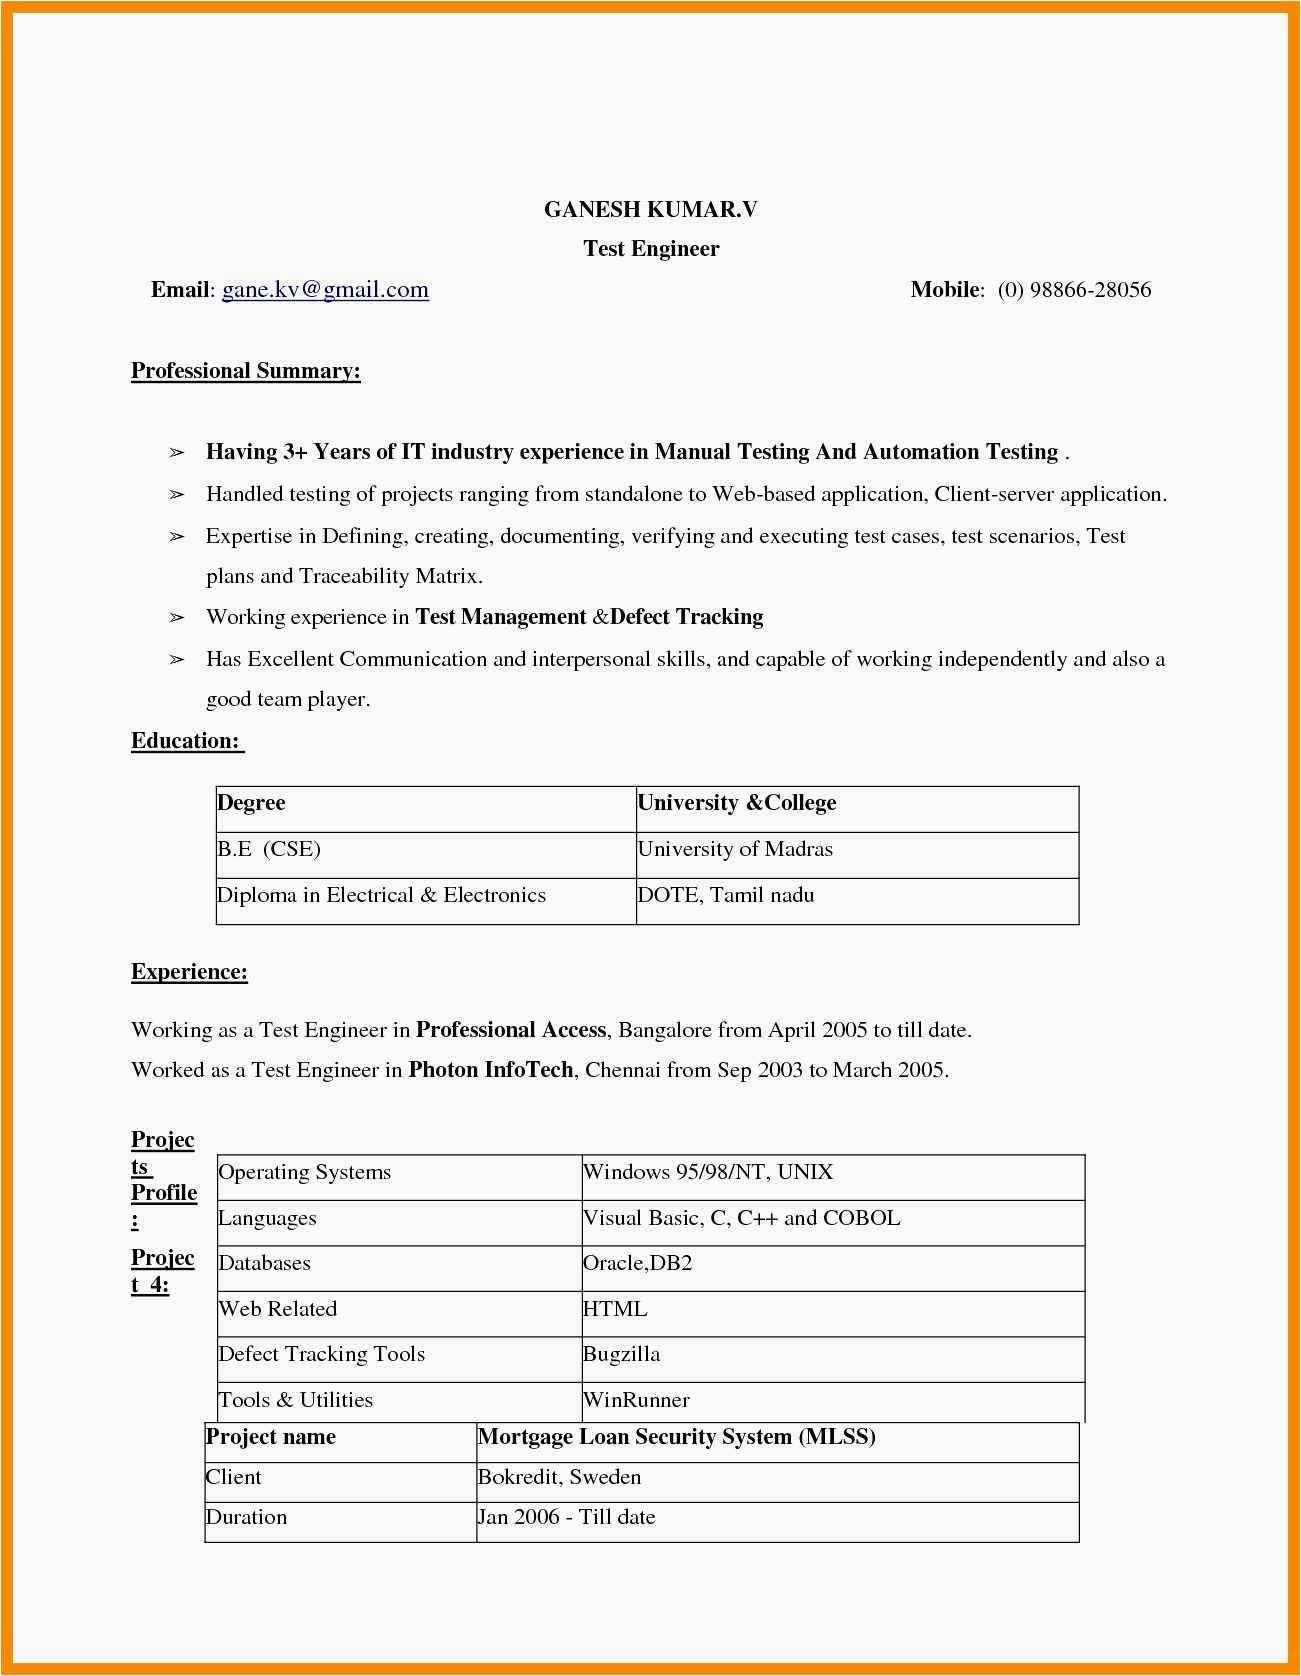 Resume Words for Manage - How to Make A Resume Word 2007 Refrence Resume Templates Word